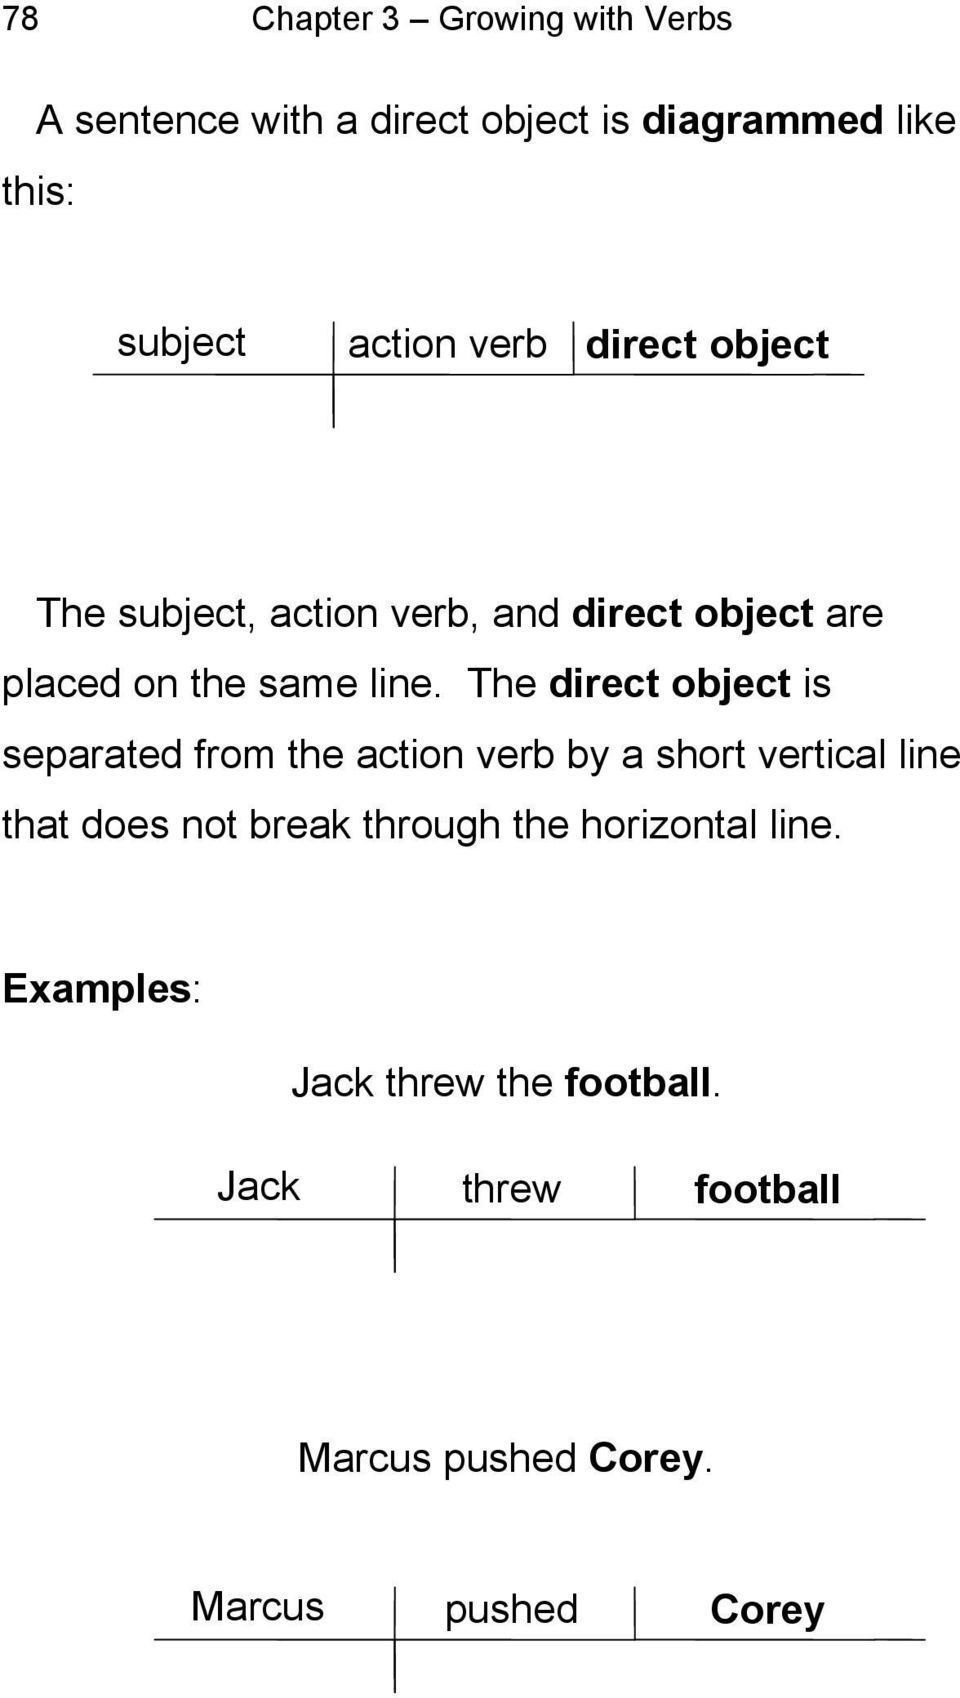 The direct object is separated from the action verb by a short vertical line that does not break through